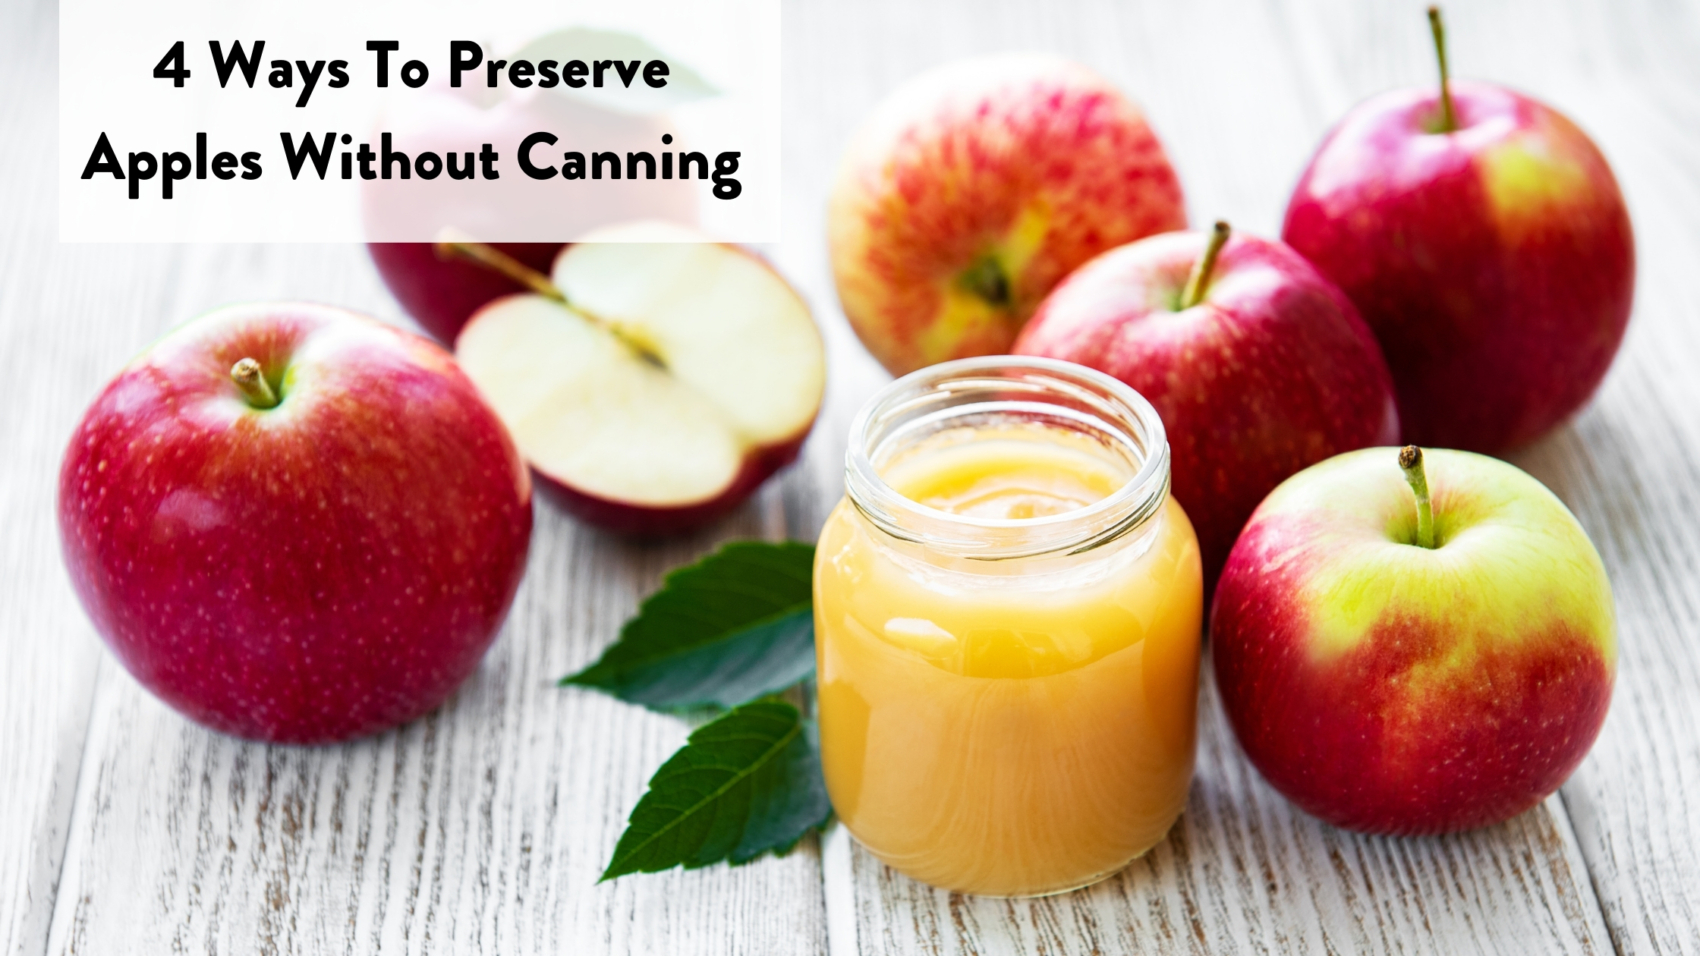 4 Ways To Preserve Apples Without Canning